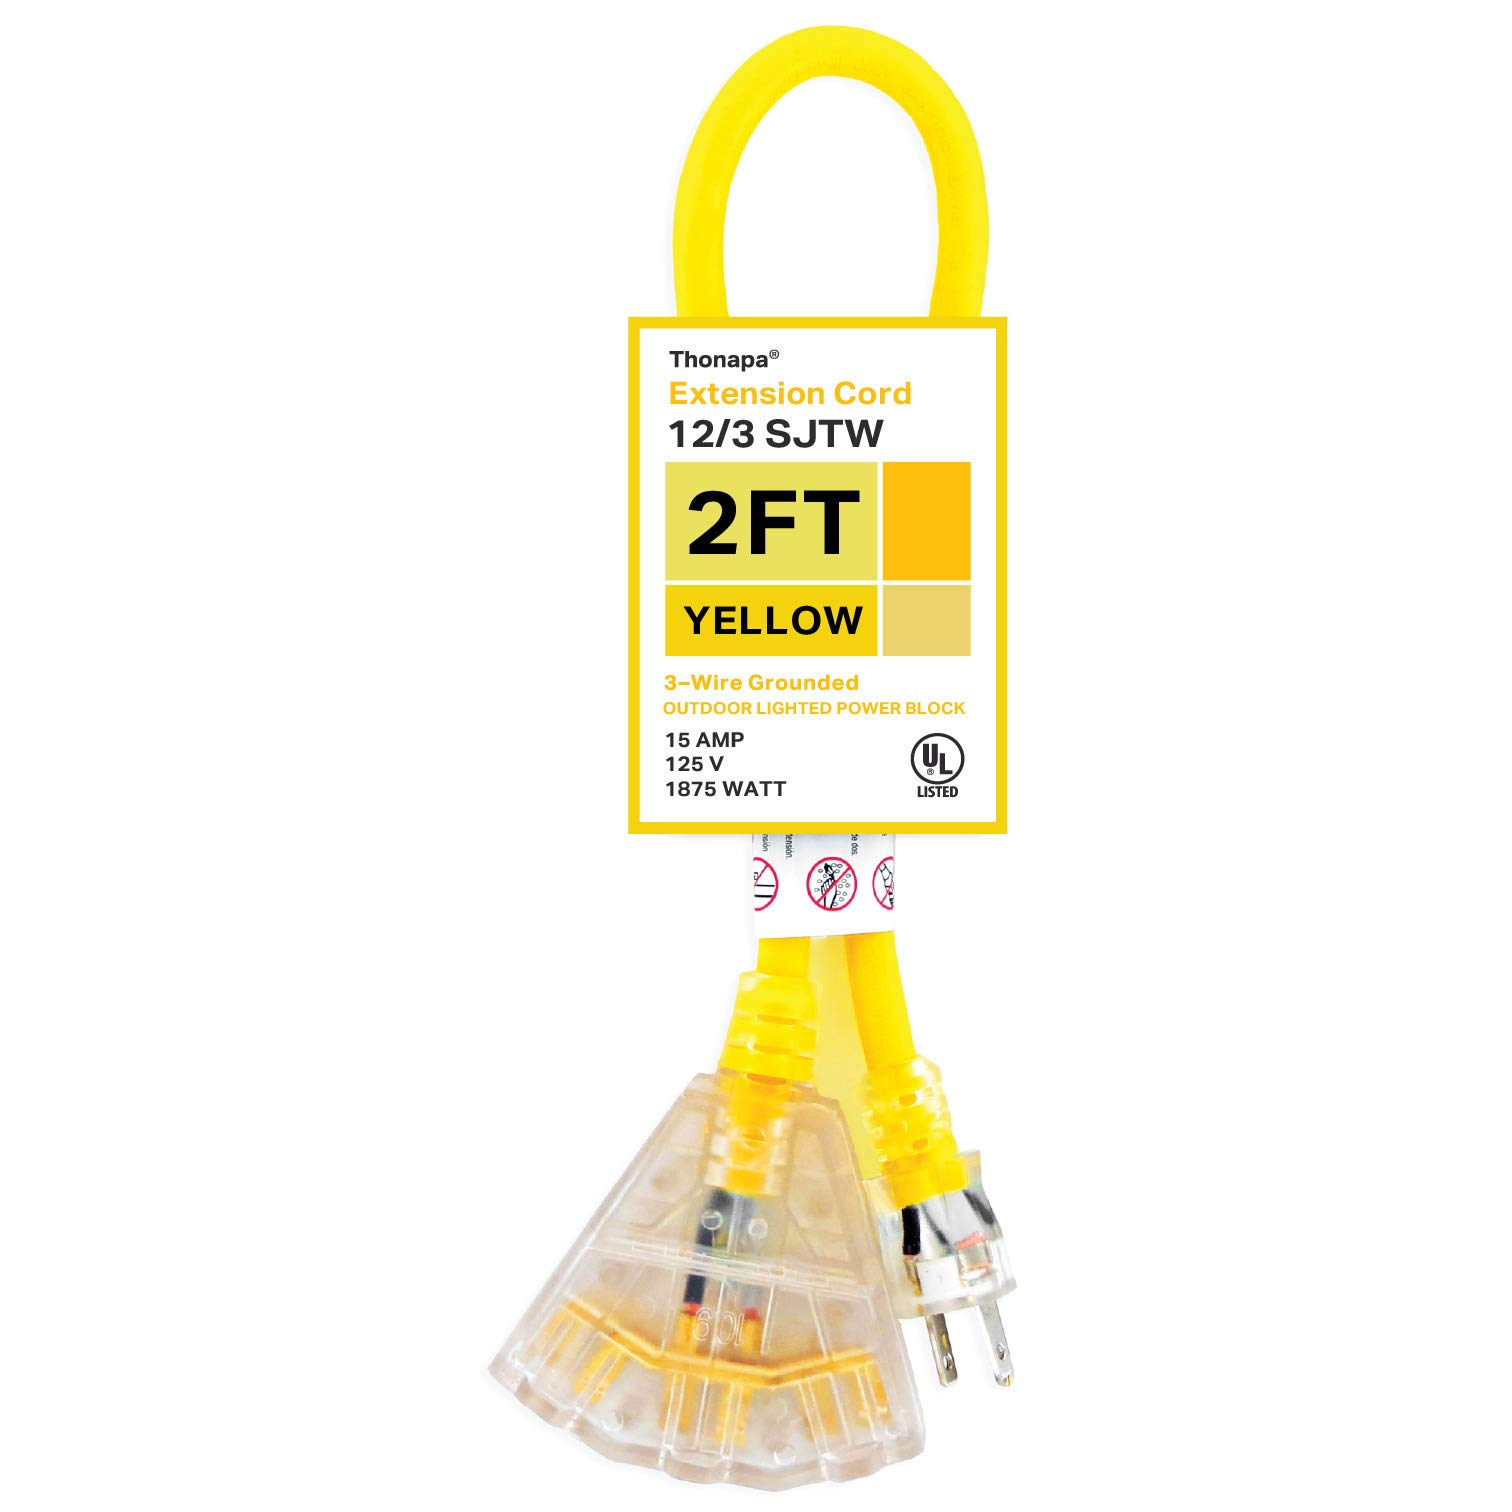 Thonapa 2Ft Outdoor Extension Cord - 12/3 Heavy Duty Yellow 3 Prong Extension Cable with 3 Electrical Power Outlets - Great for Garden & Major Appliances